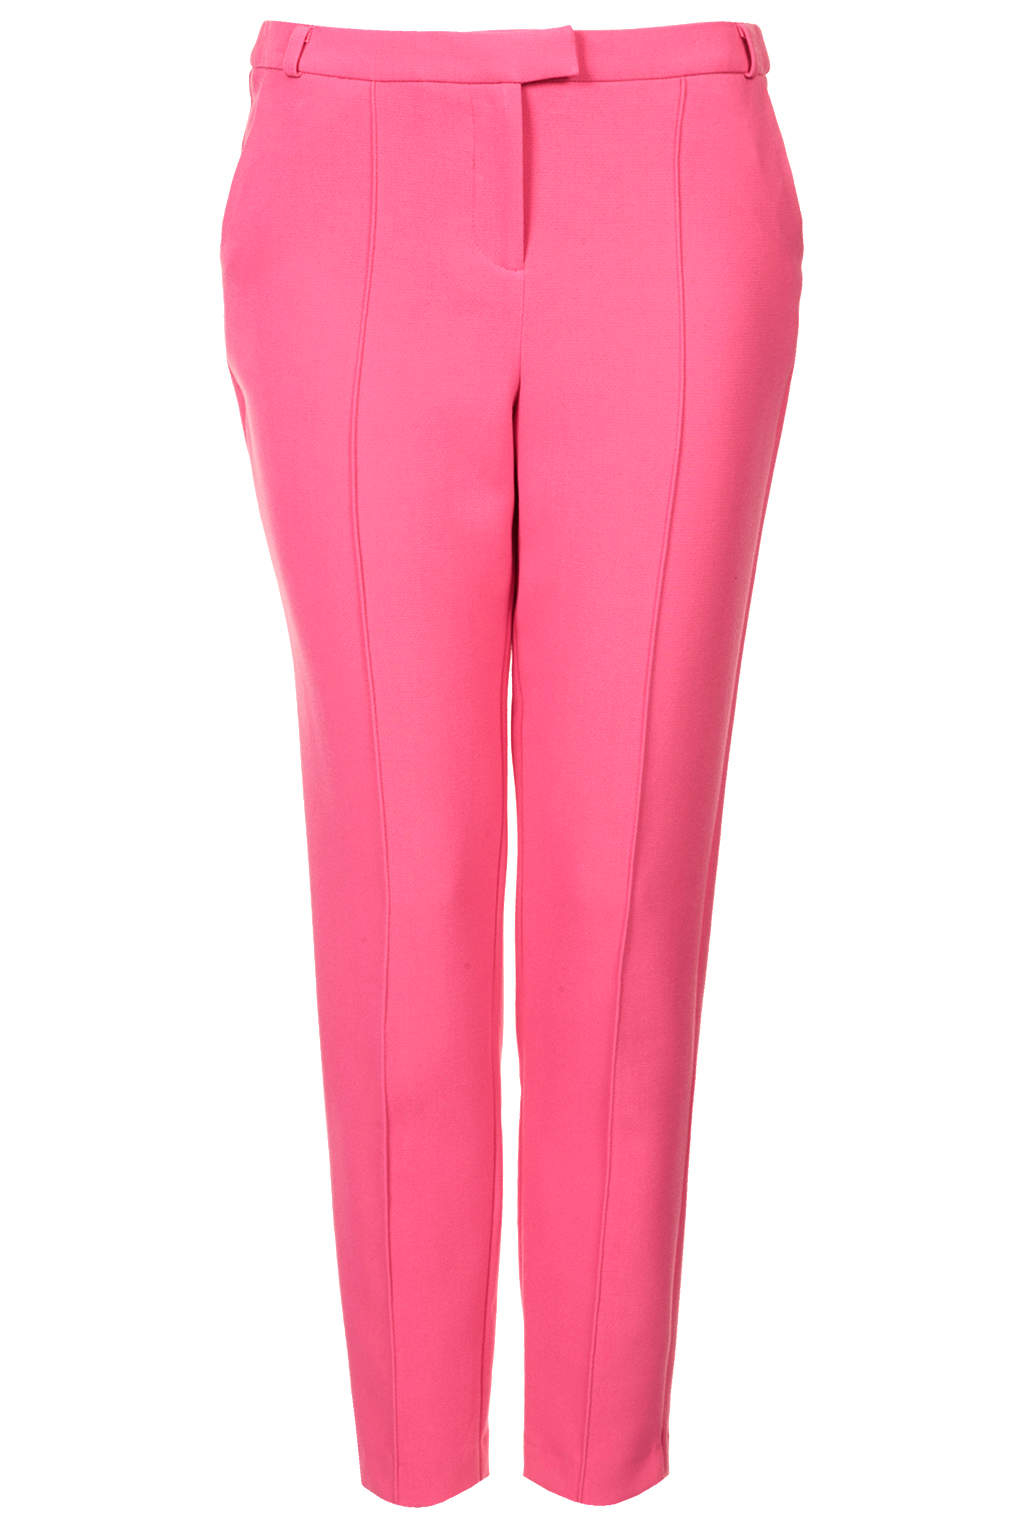 Lyst Topshop Stitch Cigarette Trousers In Pink